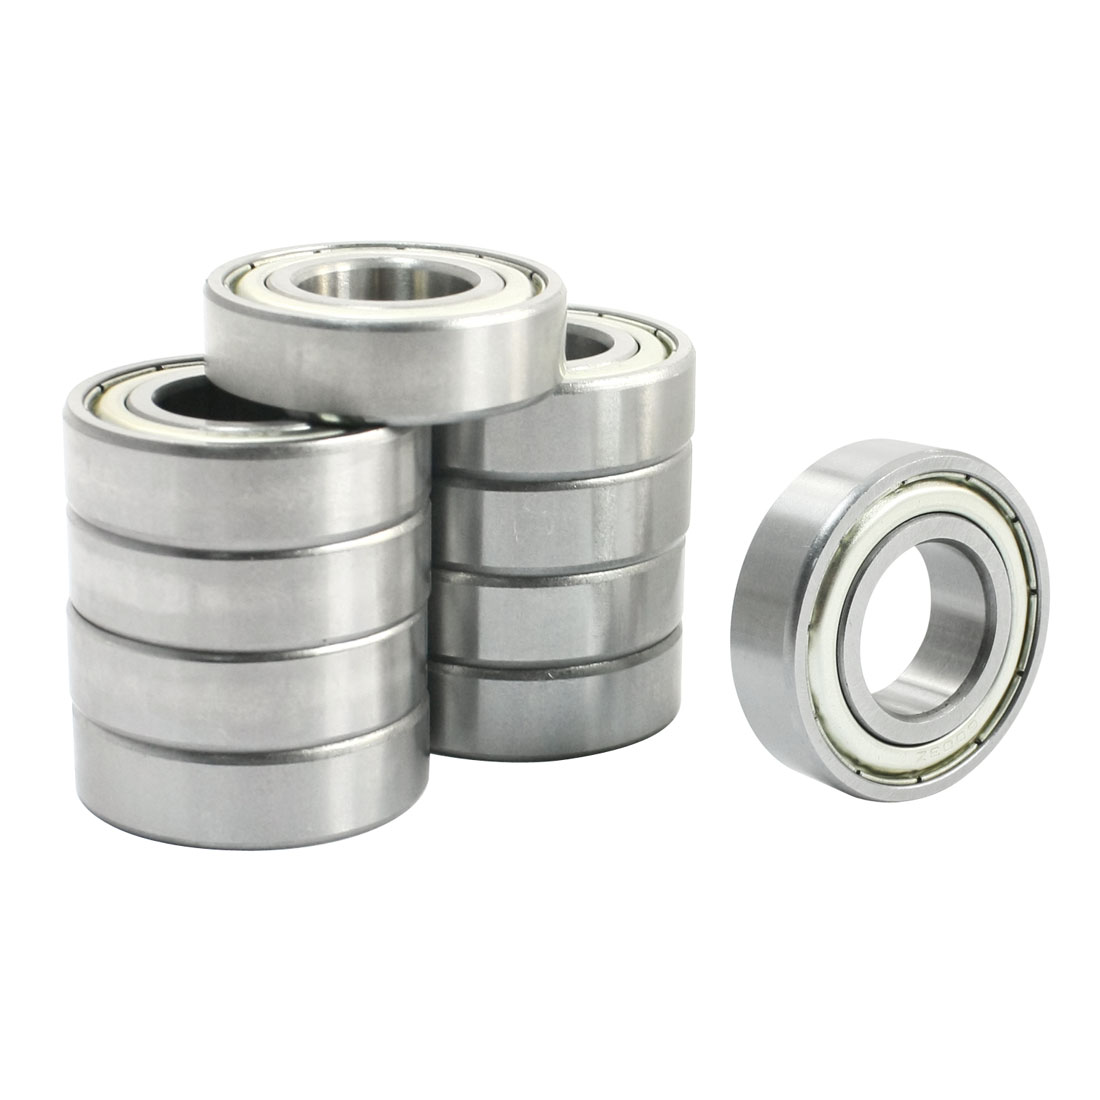 10Pcs 6003Z Single Row Shielded Deep Groove Ball Bearings 17mm x 35mm x 10mm